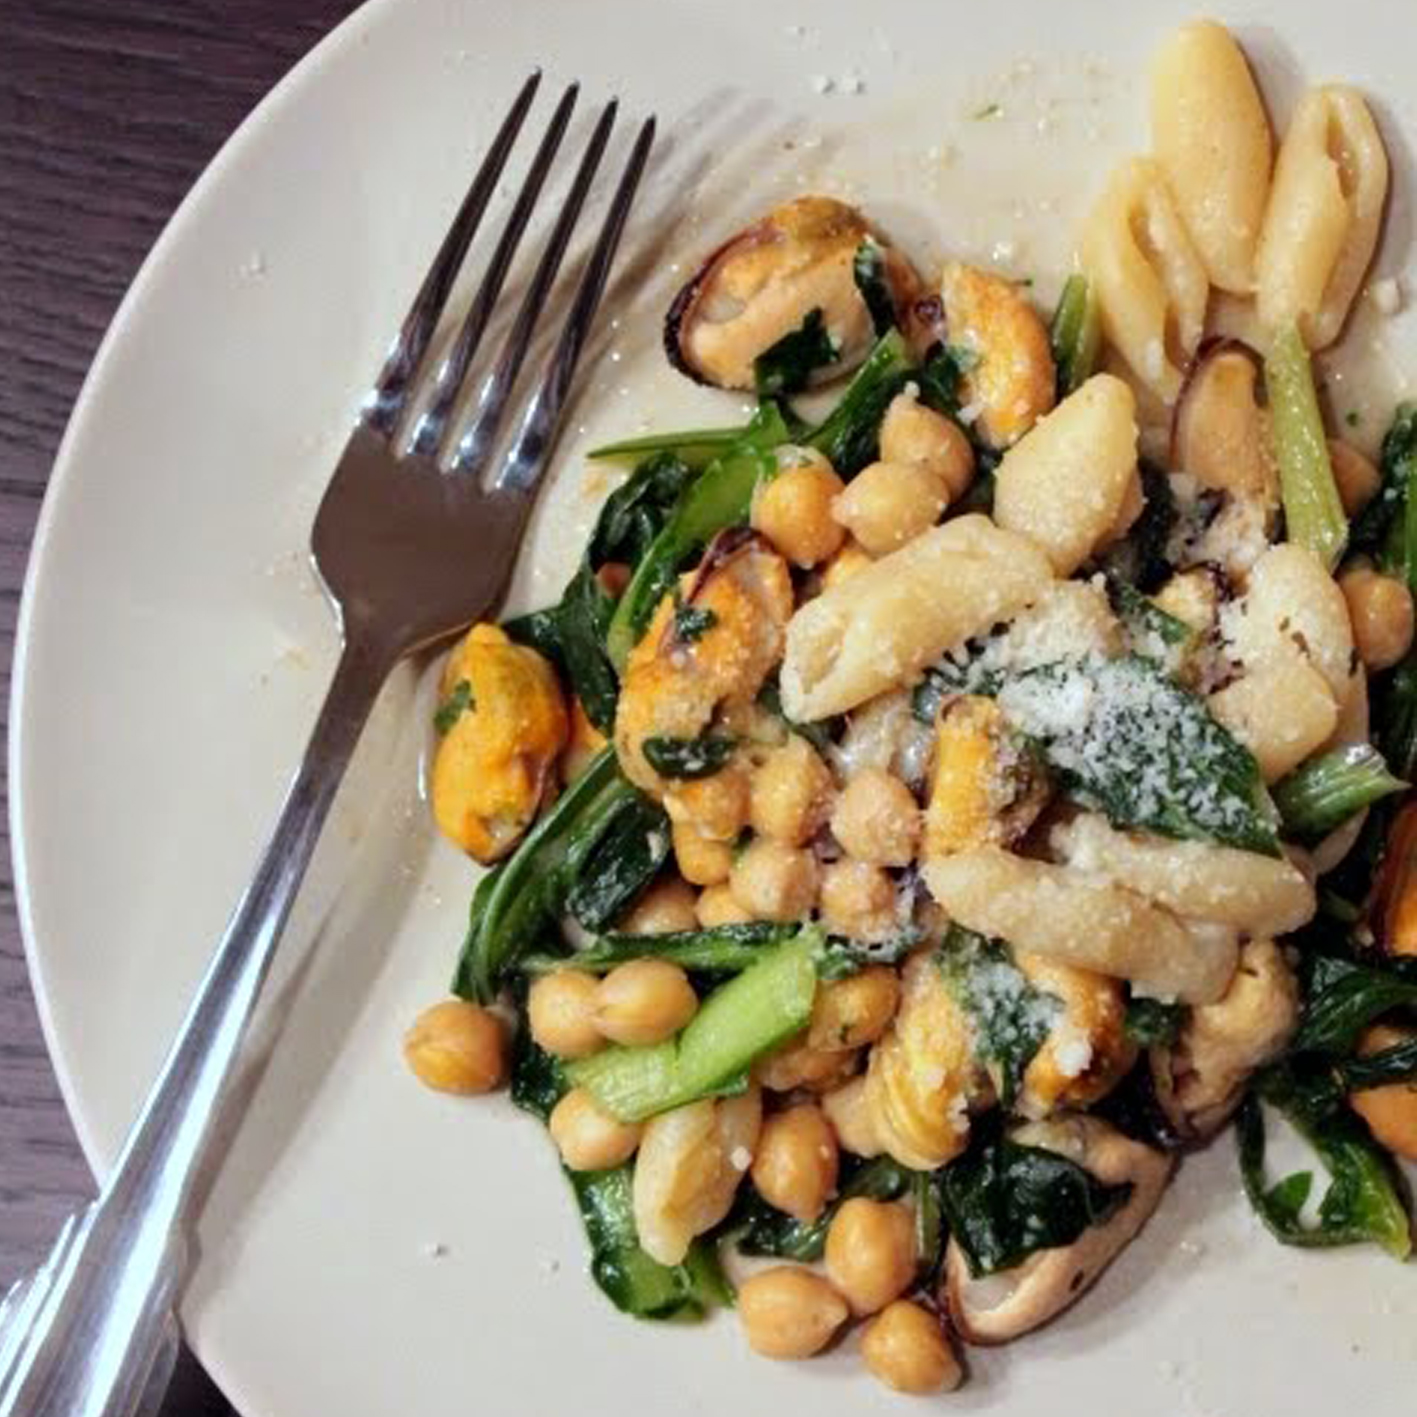 MUSSEL, CHICKPEAS AND CHICORY WITH GNOCHETTINI